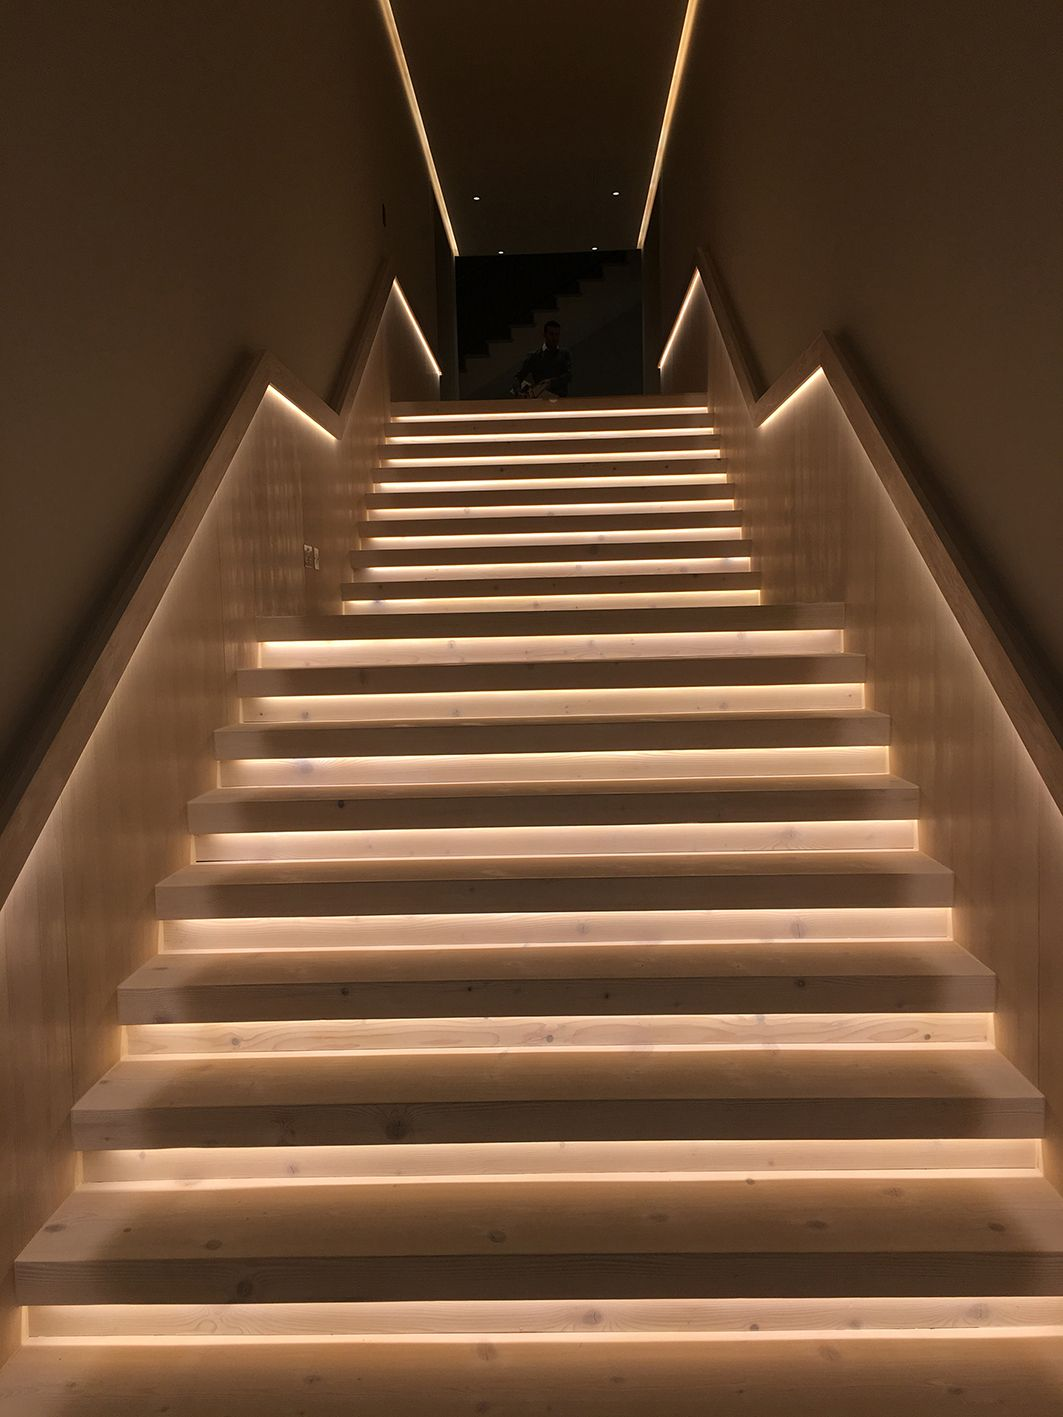 Douglas Fir Engineered Wood Staircase With Under Lighting Created By  Element7